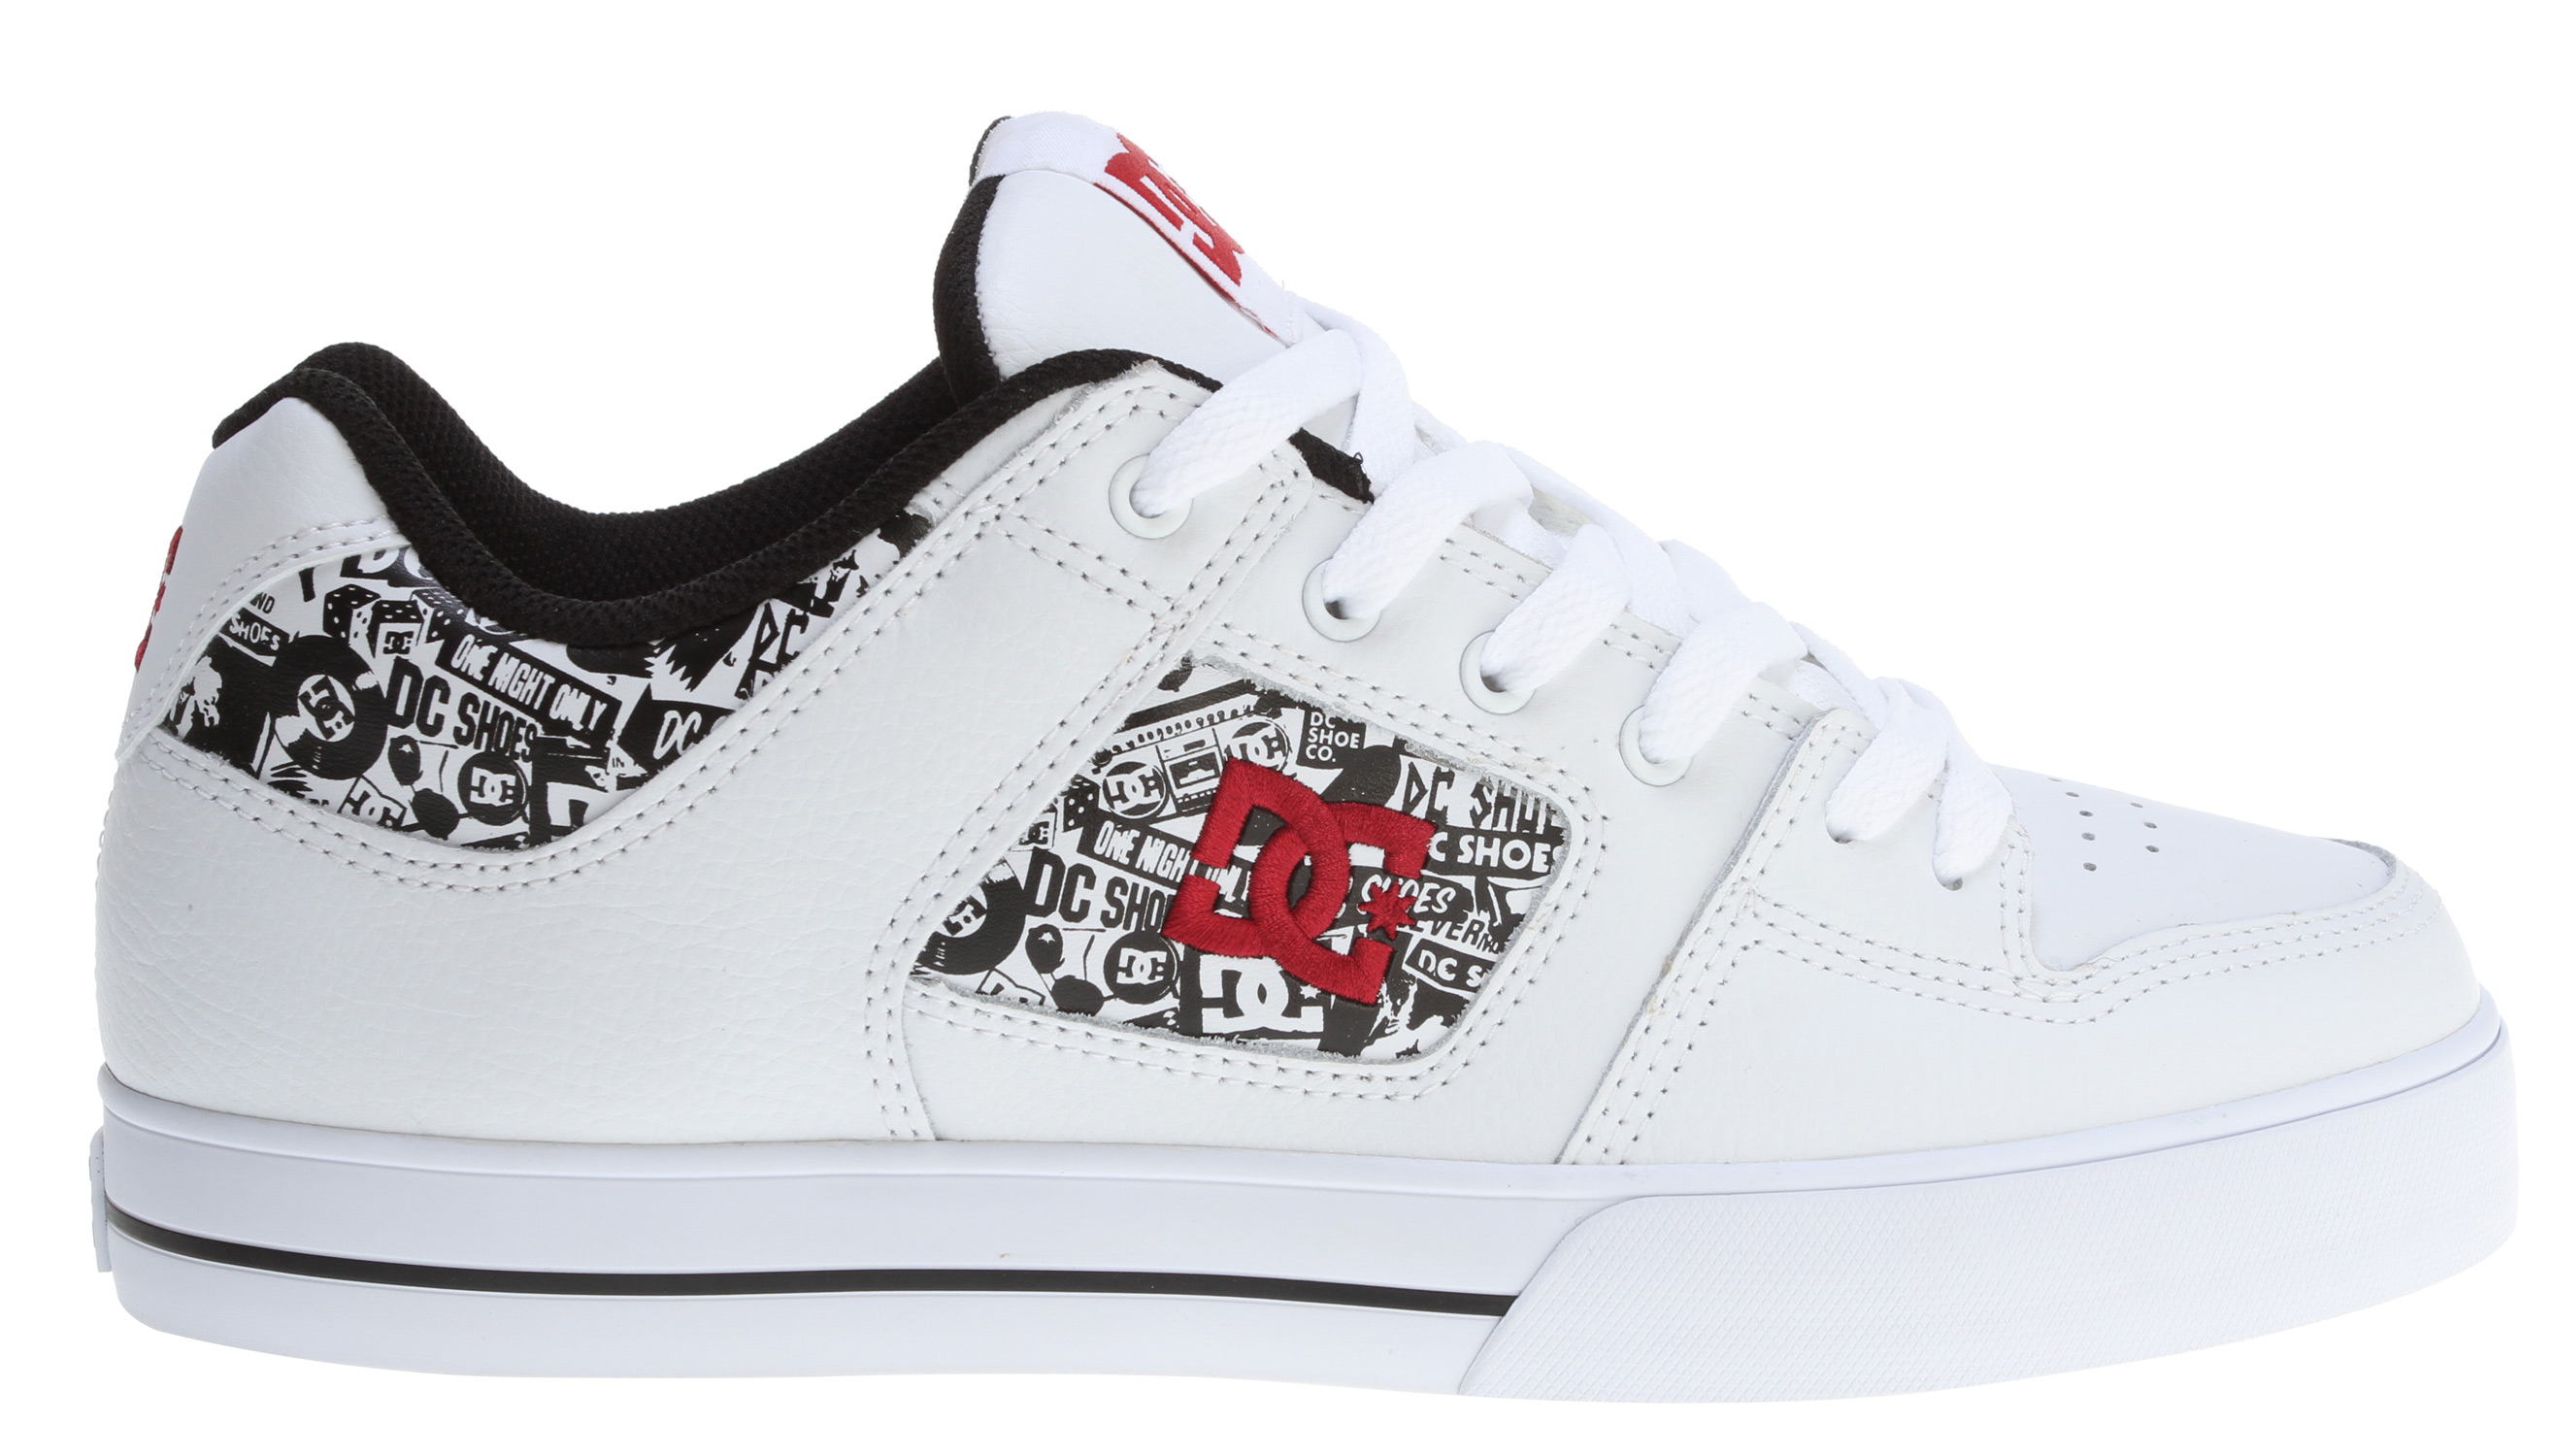 Skateboard Key Features of the DC Pure XE Skate Shoes: Heavy duty suede upper Soft resilient action leather Eyelets on medial side Metal eyelets and lace locks Foam padded tongue and collar Innovative DGT rubber bottom design for enhanced board control, feel, and durability Rubber toe wrap - $38.95